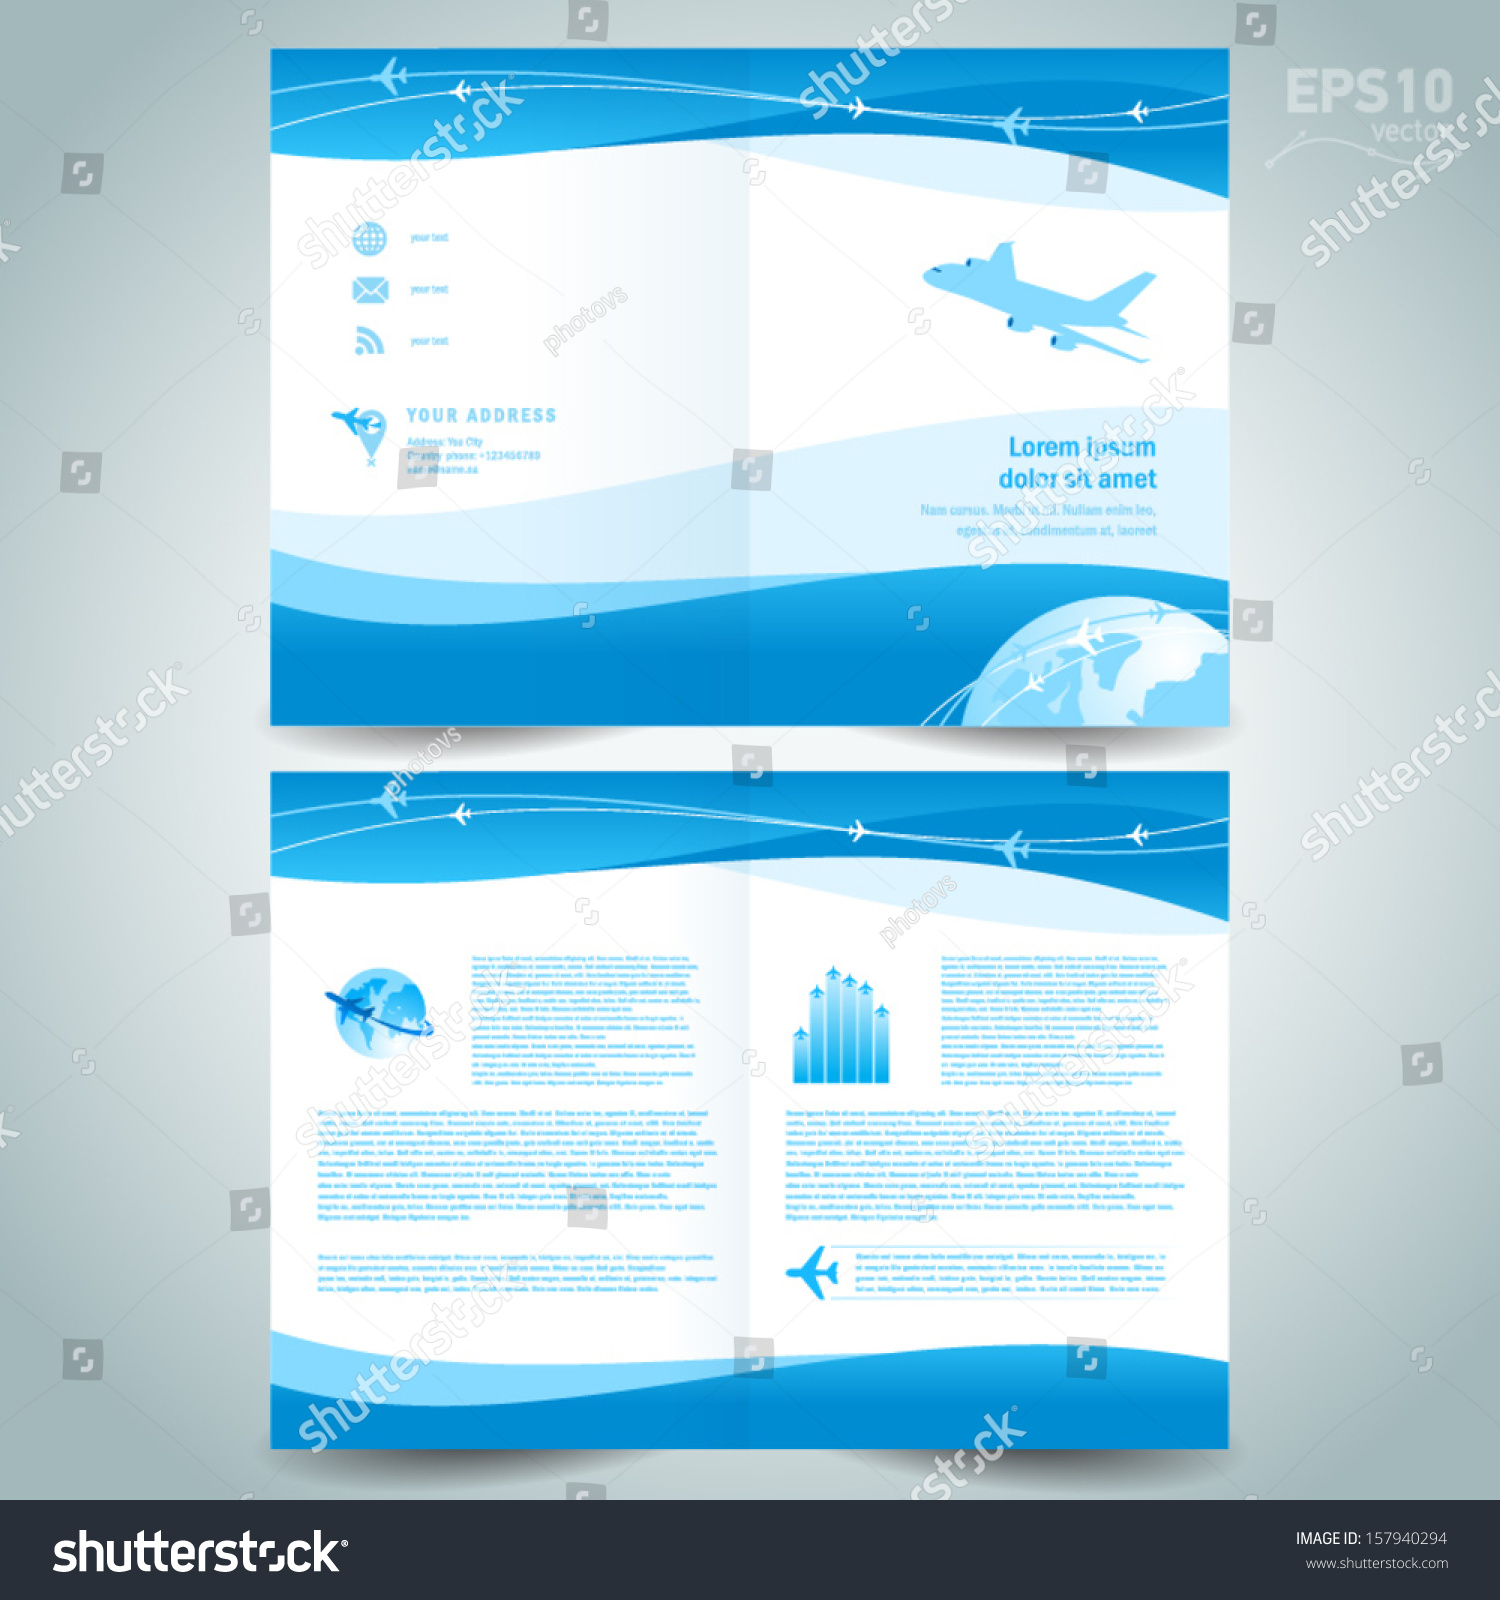 Booklet design template catalog brochure folder stock for Booklet brochure template